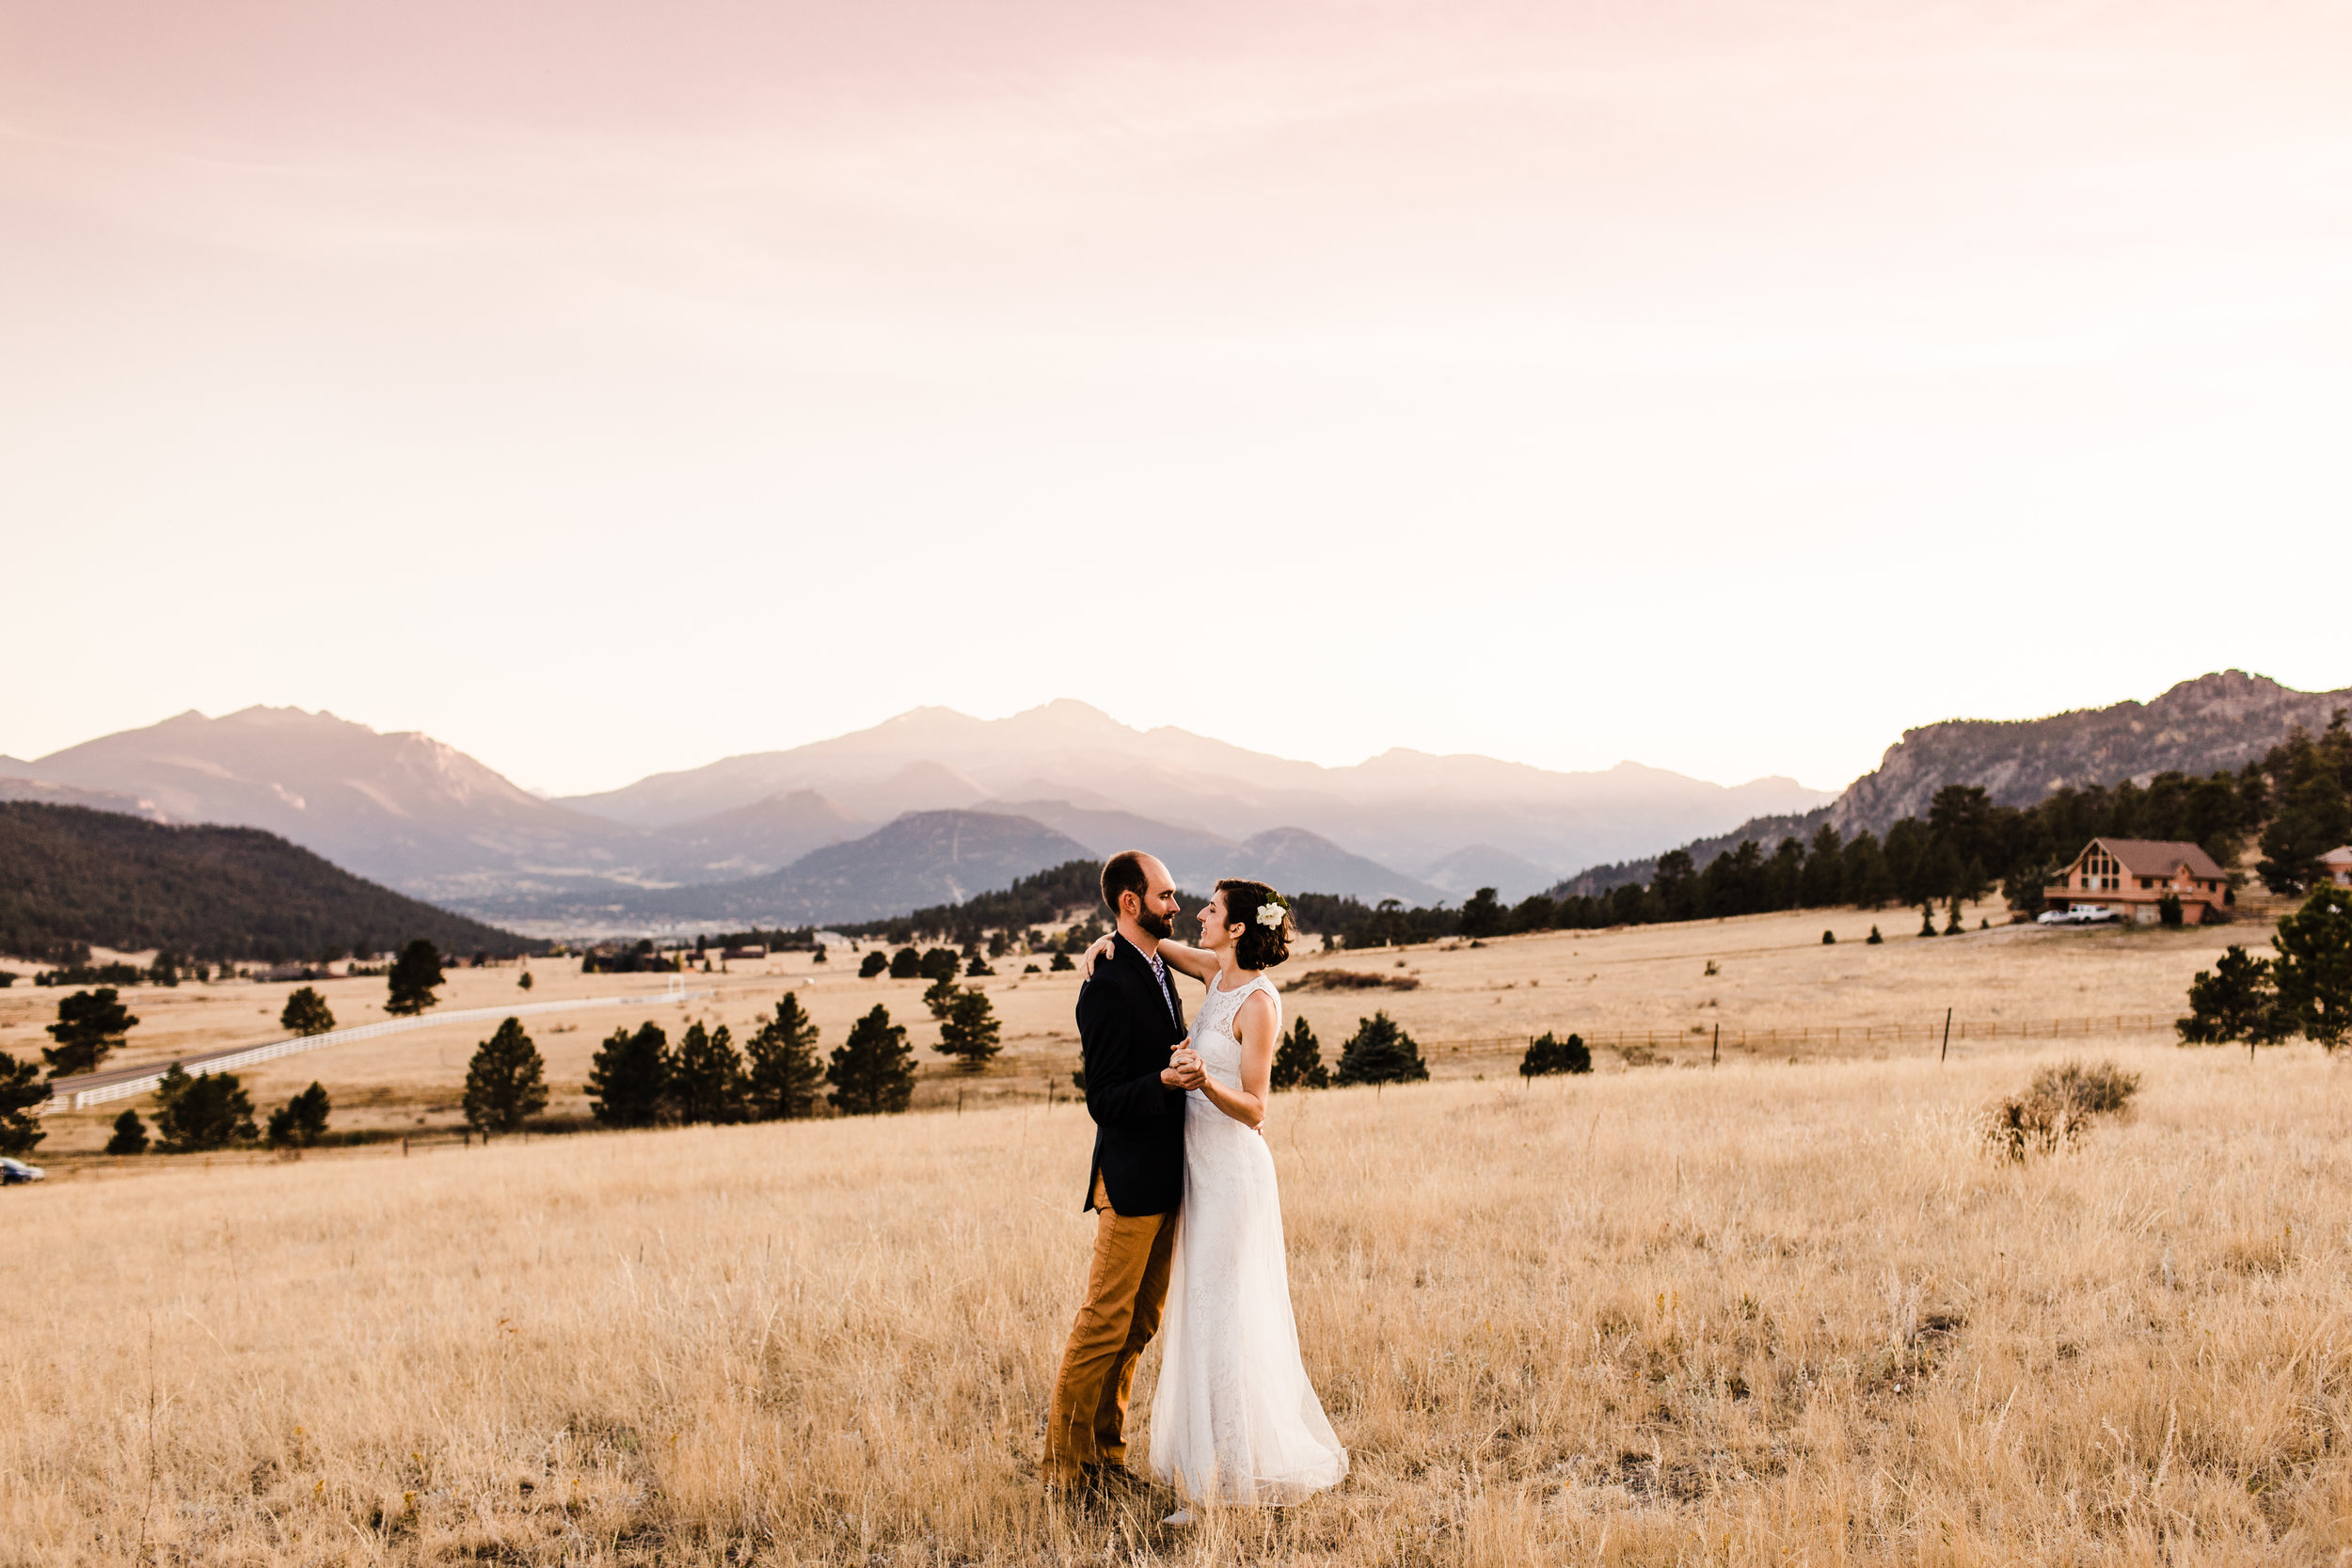 Adventure Elopement Photographer | Colorado Mountain Elopement in Estes Park